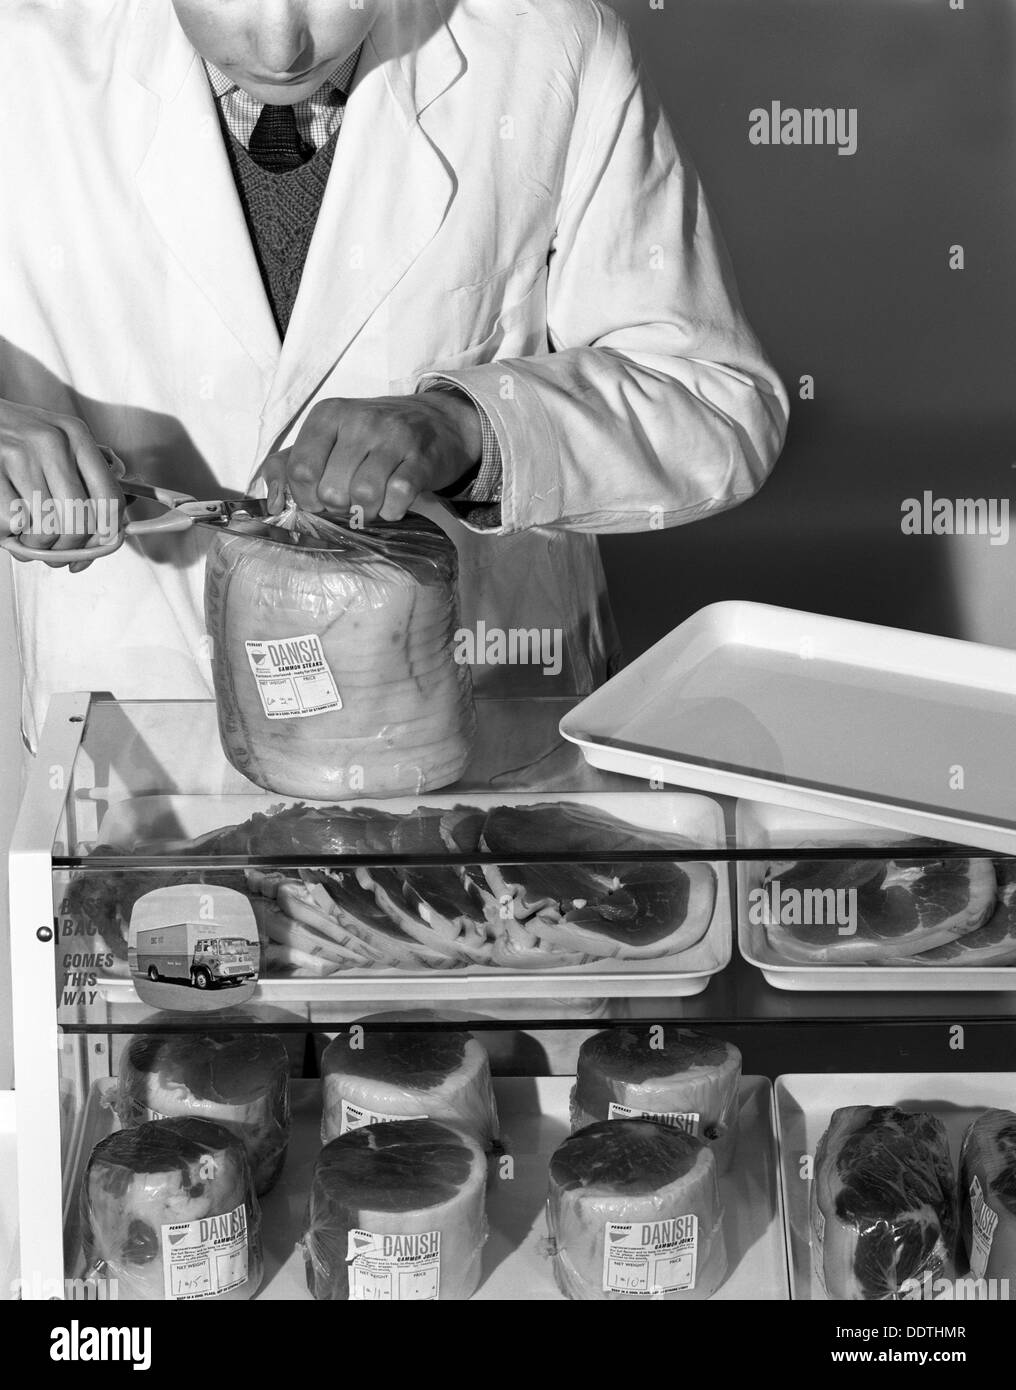 Pre-packed gammon steaks, Danish Bacon Company, Yorkshire, 1964. Artist: Michael Walters - Stock Image